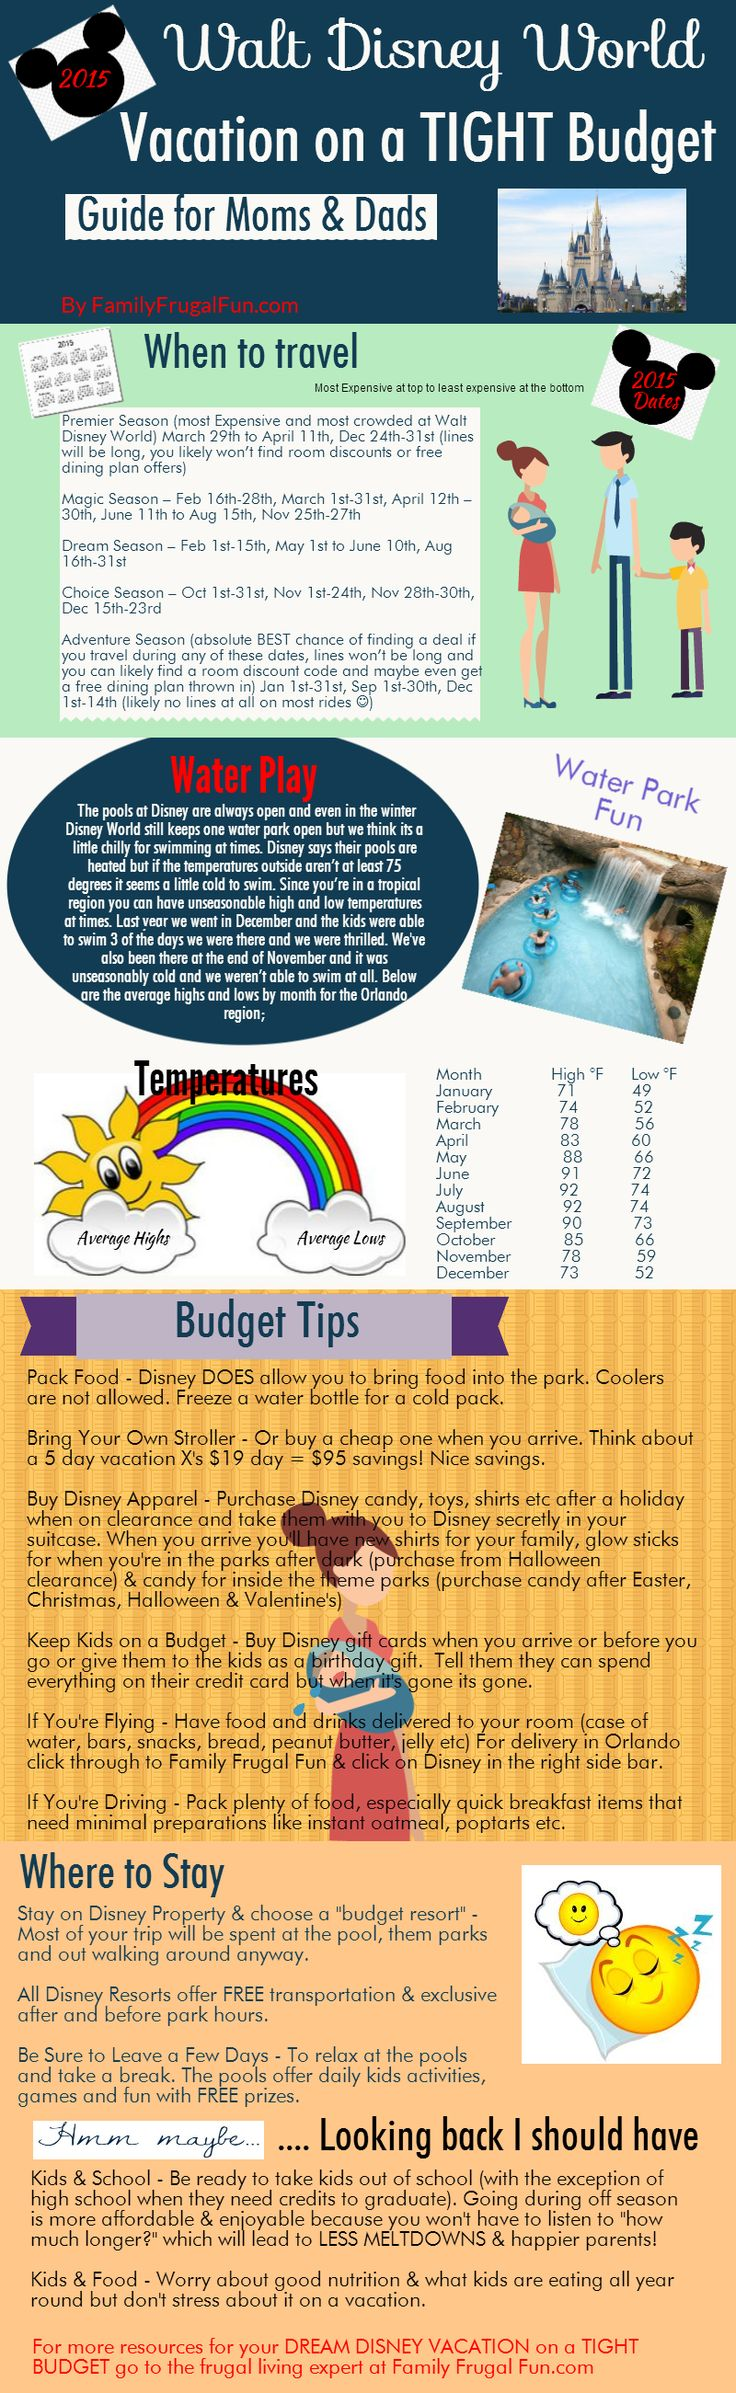 2015 Cheapest Dates to Travel to Walt Disney World on a Tight Budget